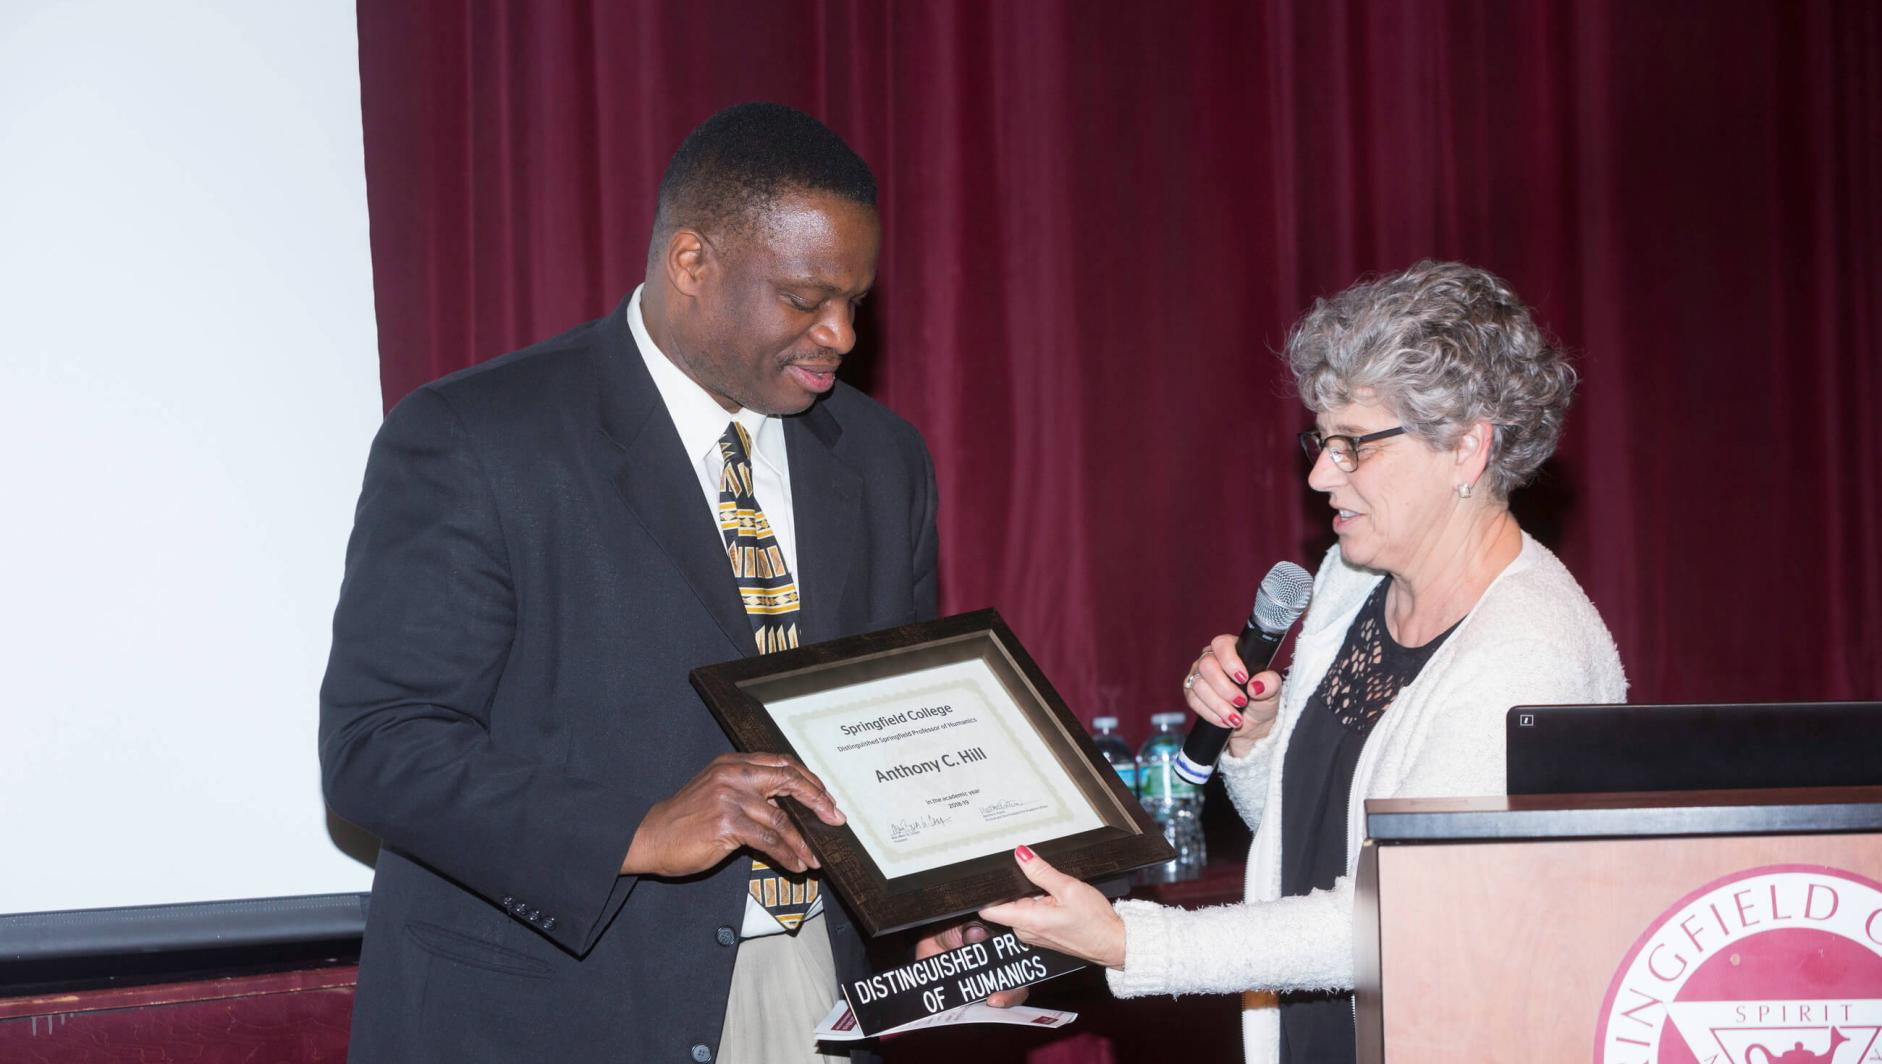 Dr Hill receiving an award.